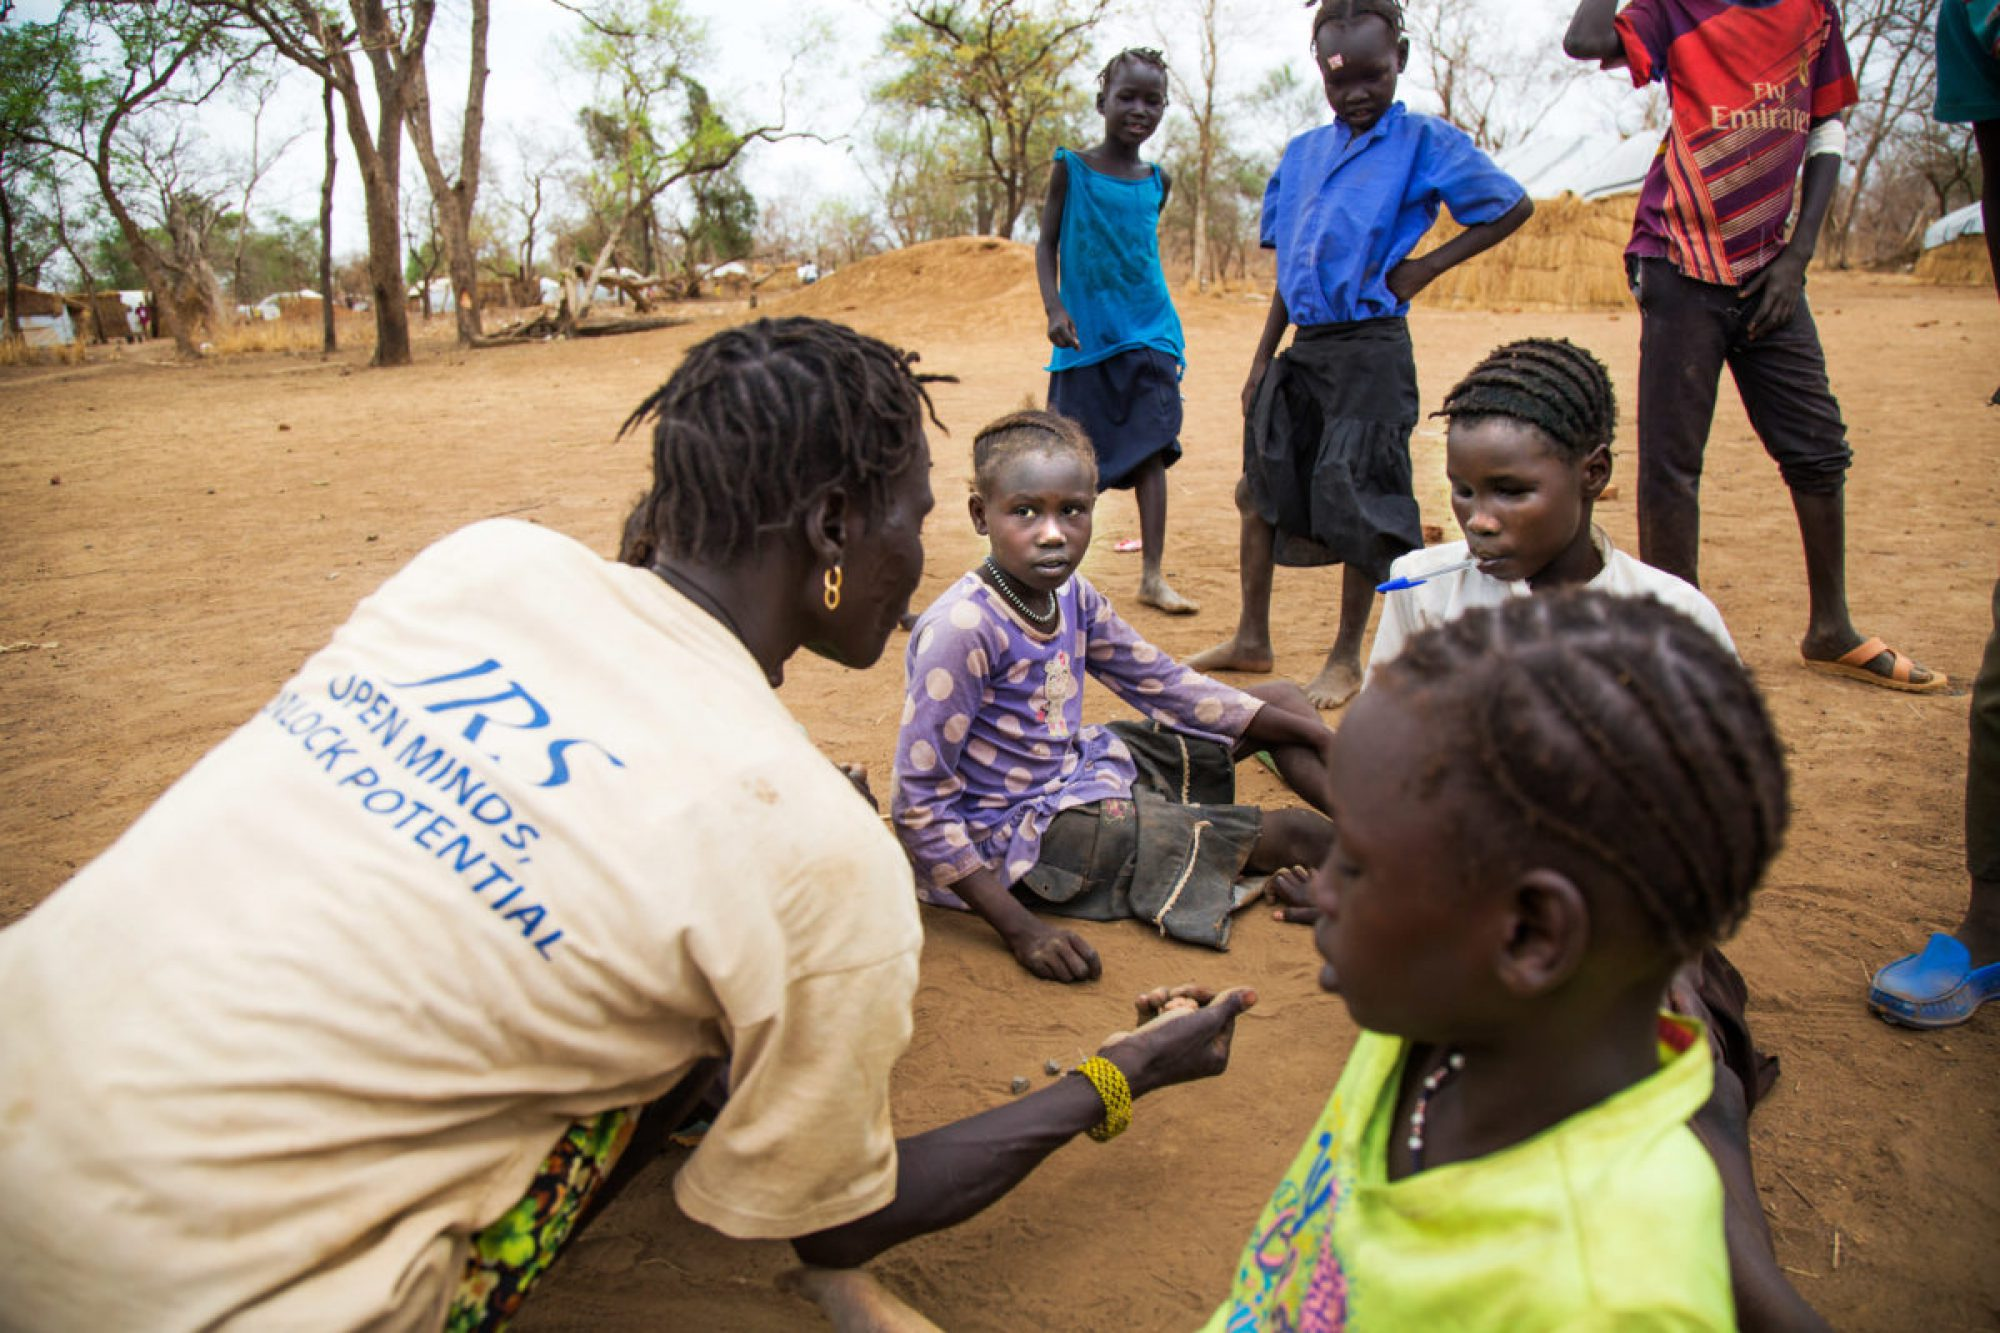 Children play during a break at the Offra school, in Maban, South Sudan.